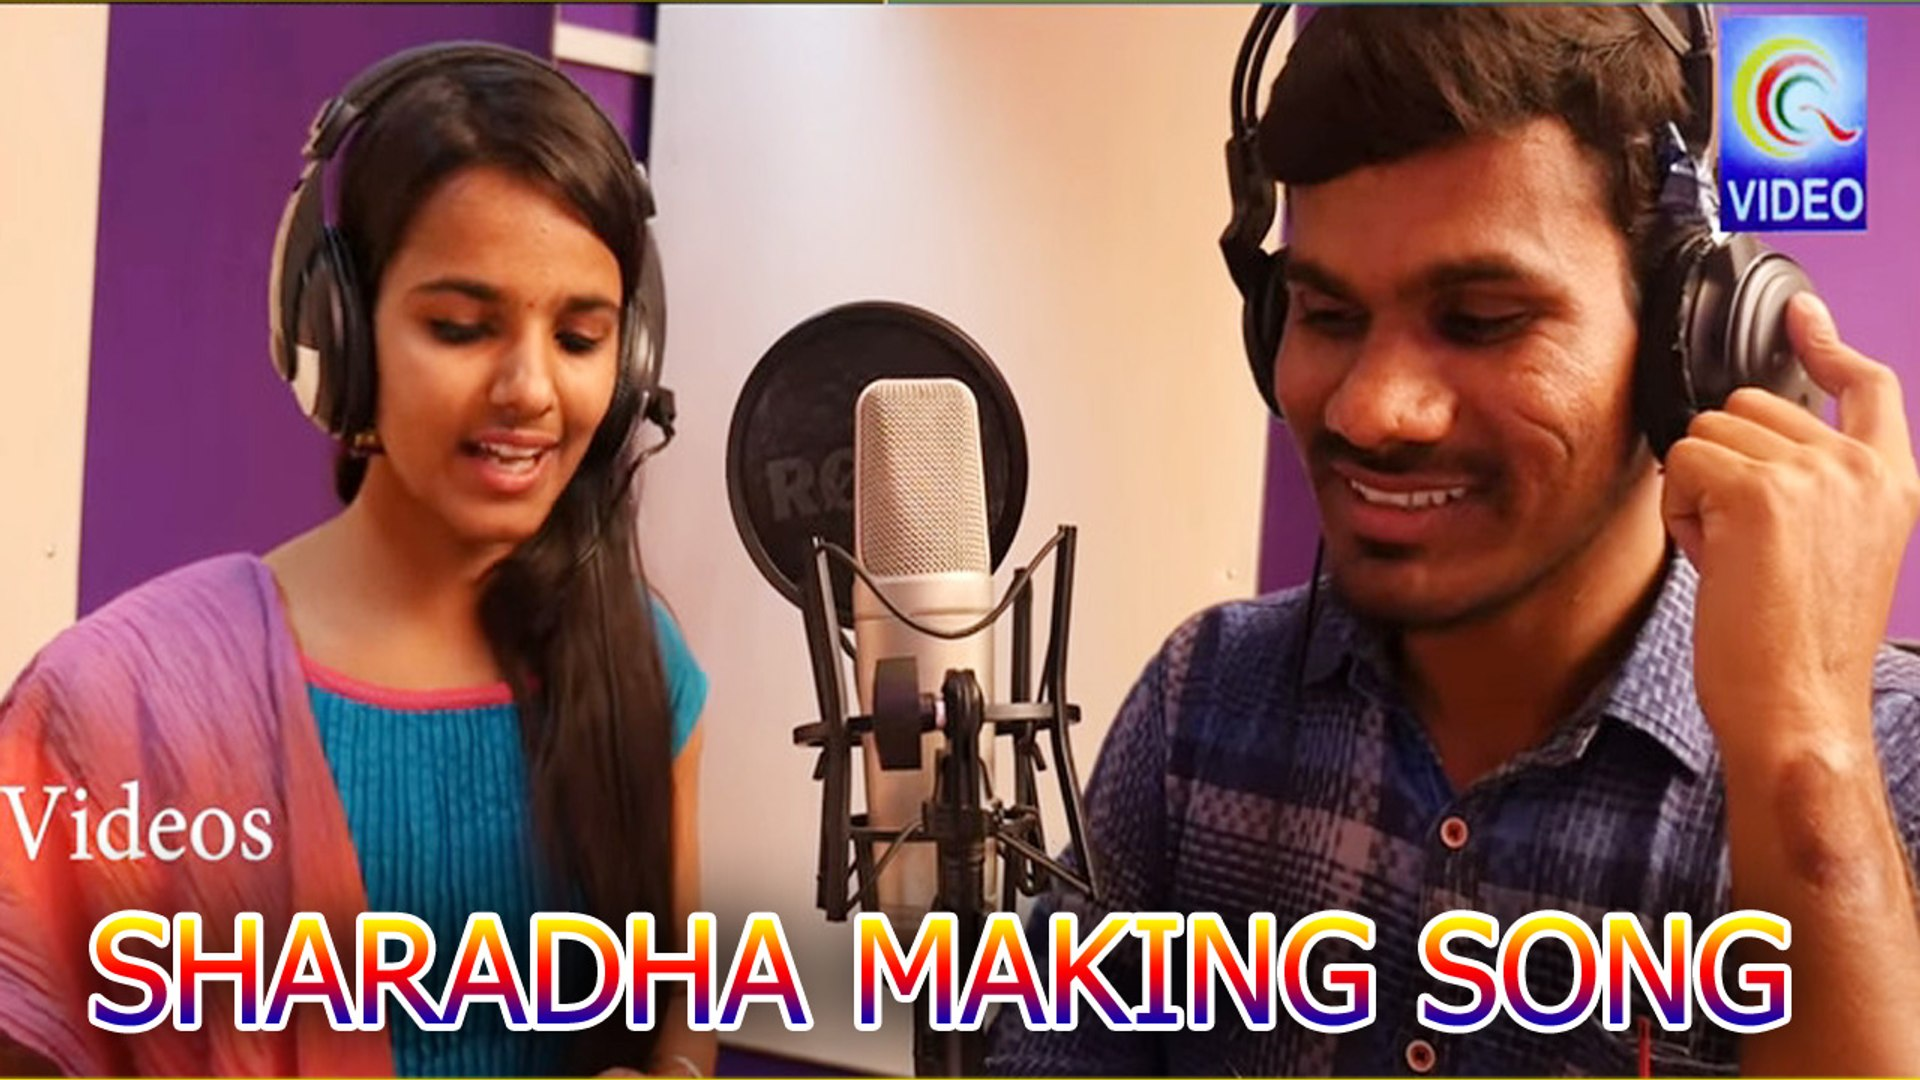 Sharadha New Banjara Making Dj Song Qvideos Video Dailymotion